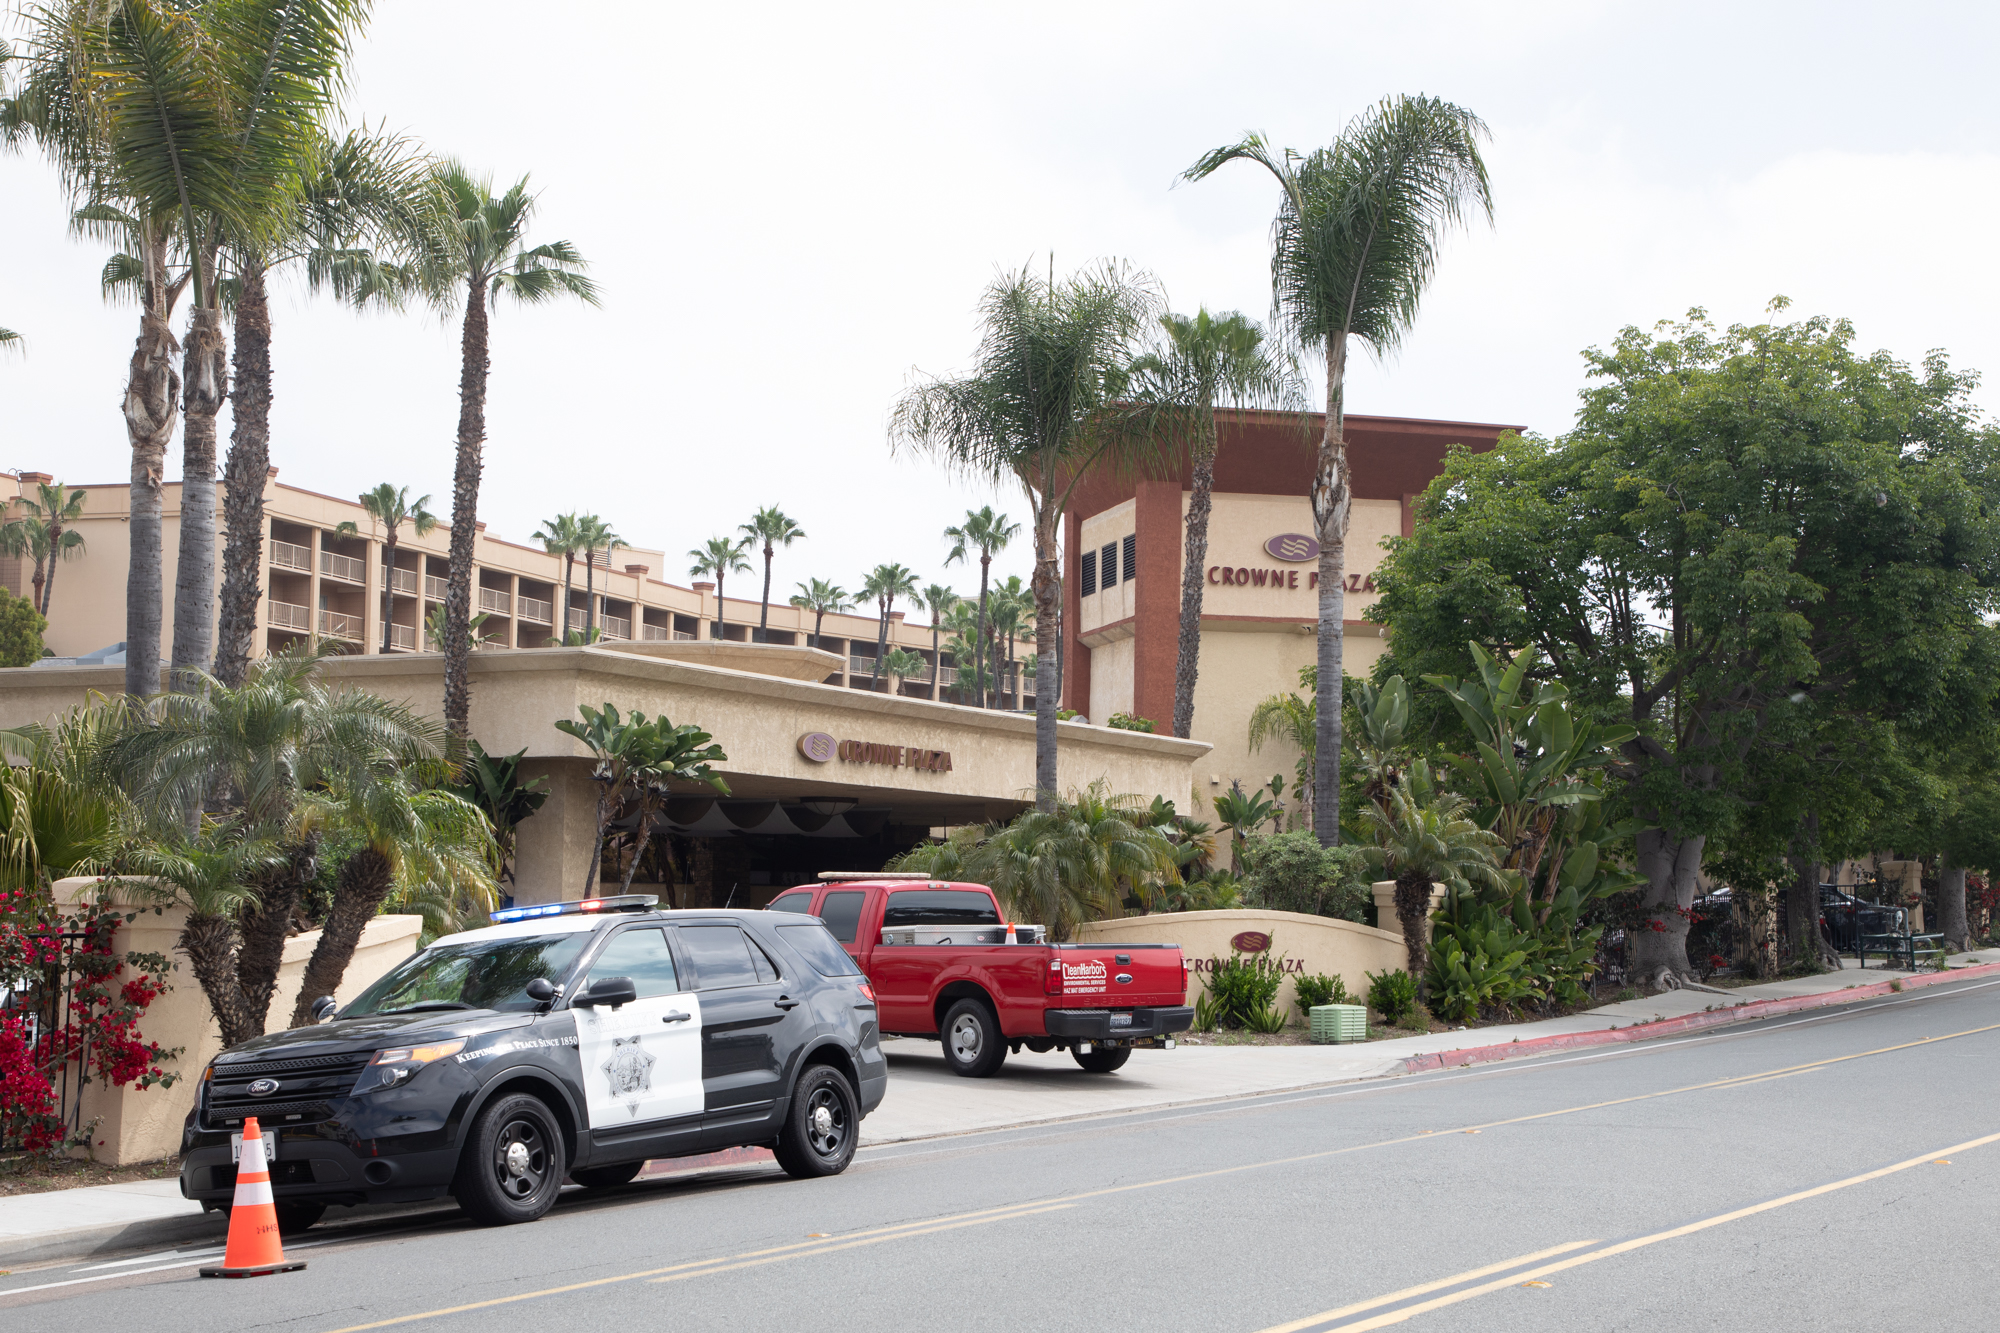 Wanted posters of inewsource reporters circulate at county's COVID-19 hotels